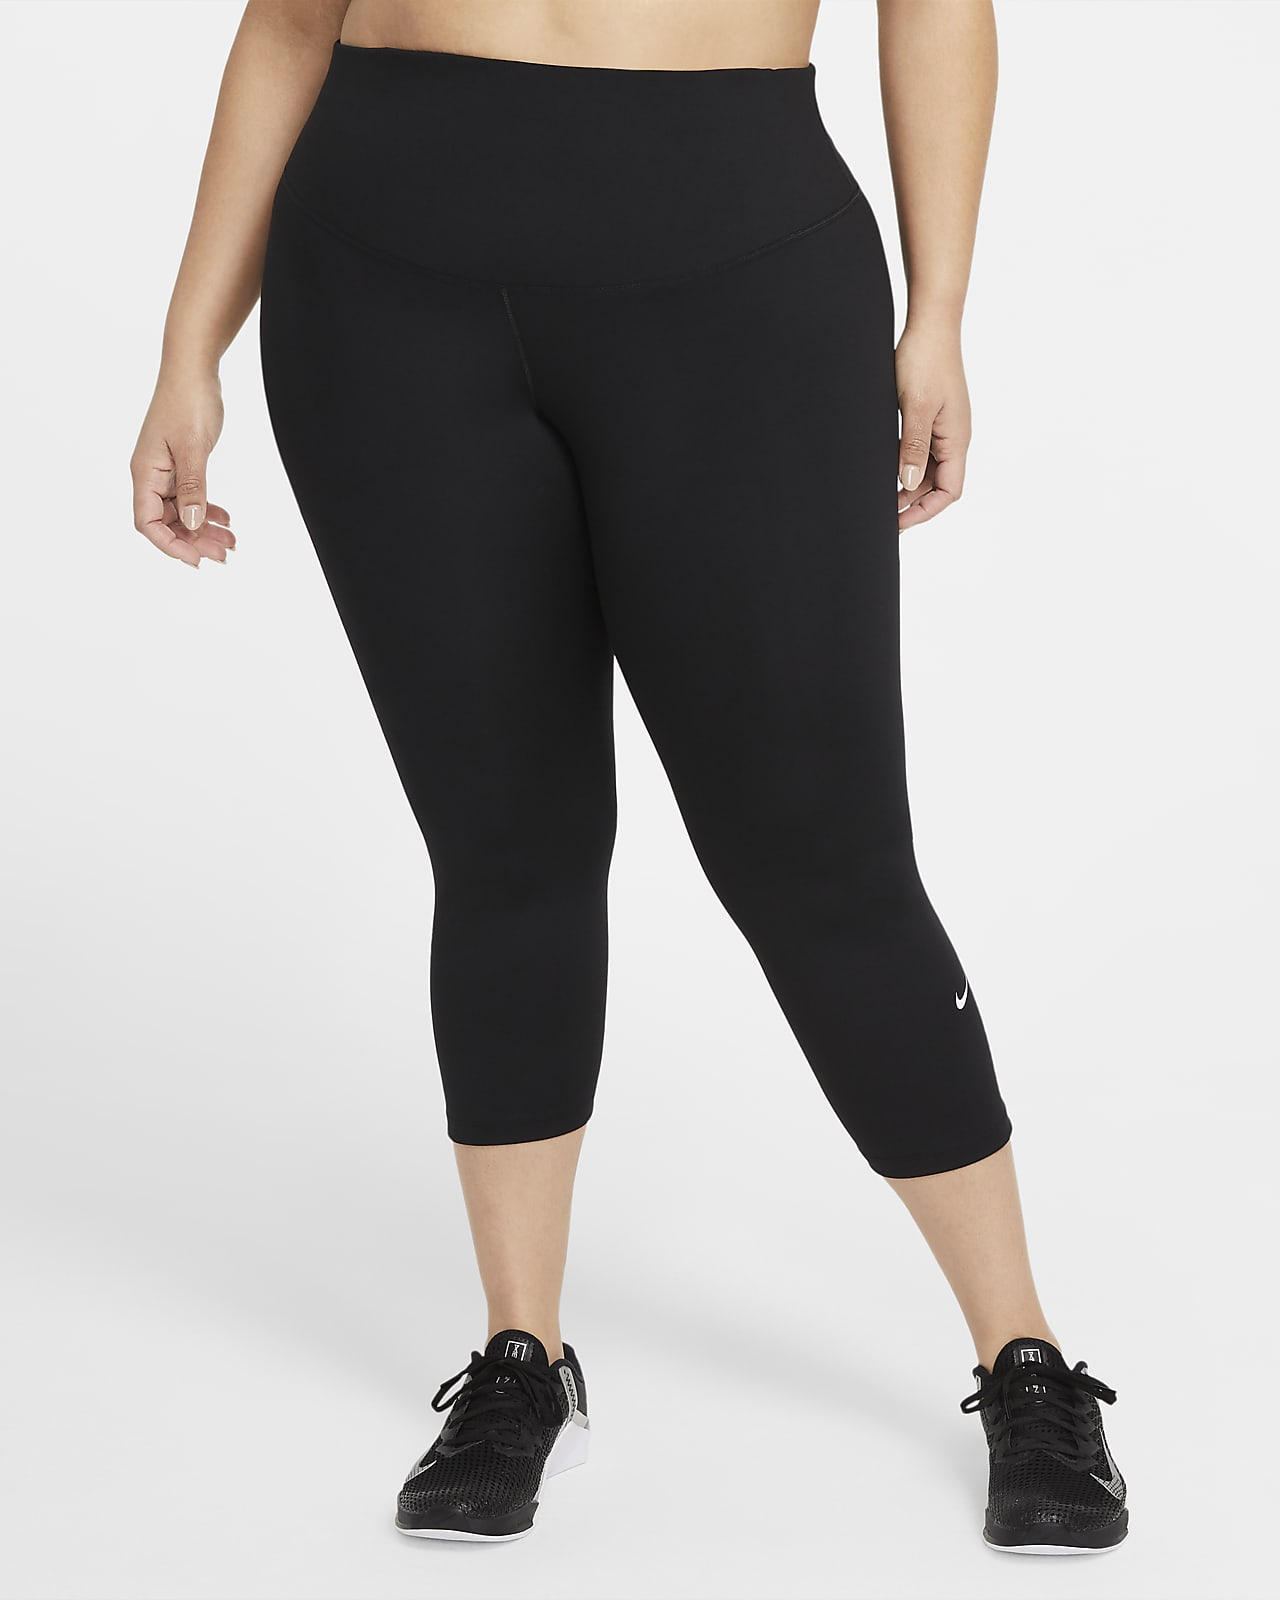 Legging court taille mi-basse Nike One pour Femme (grande taille)